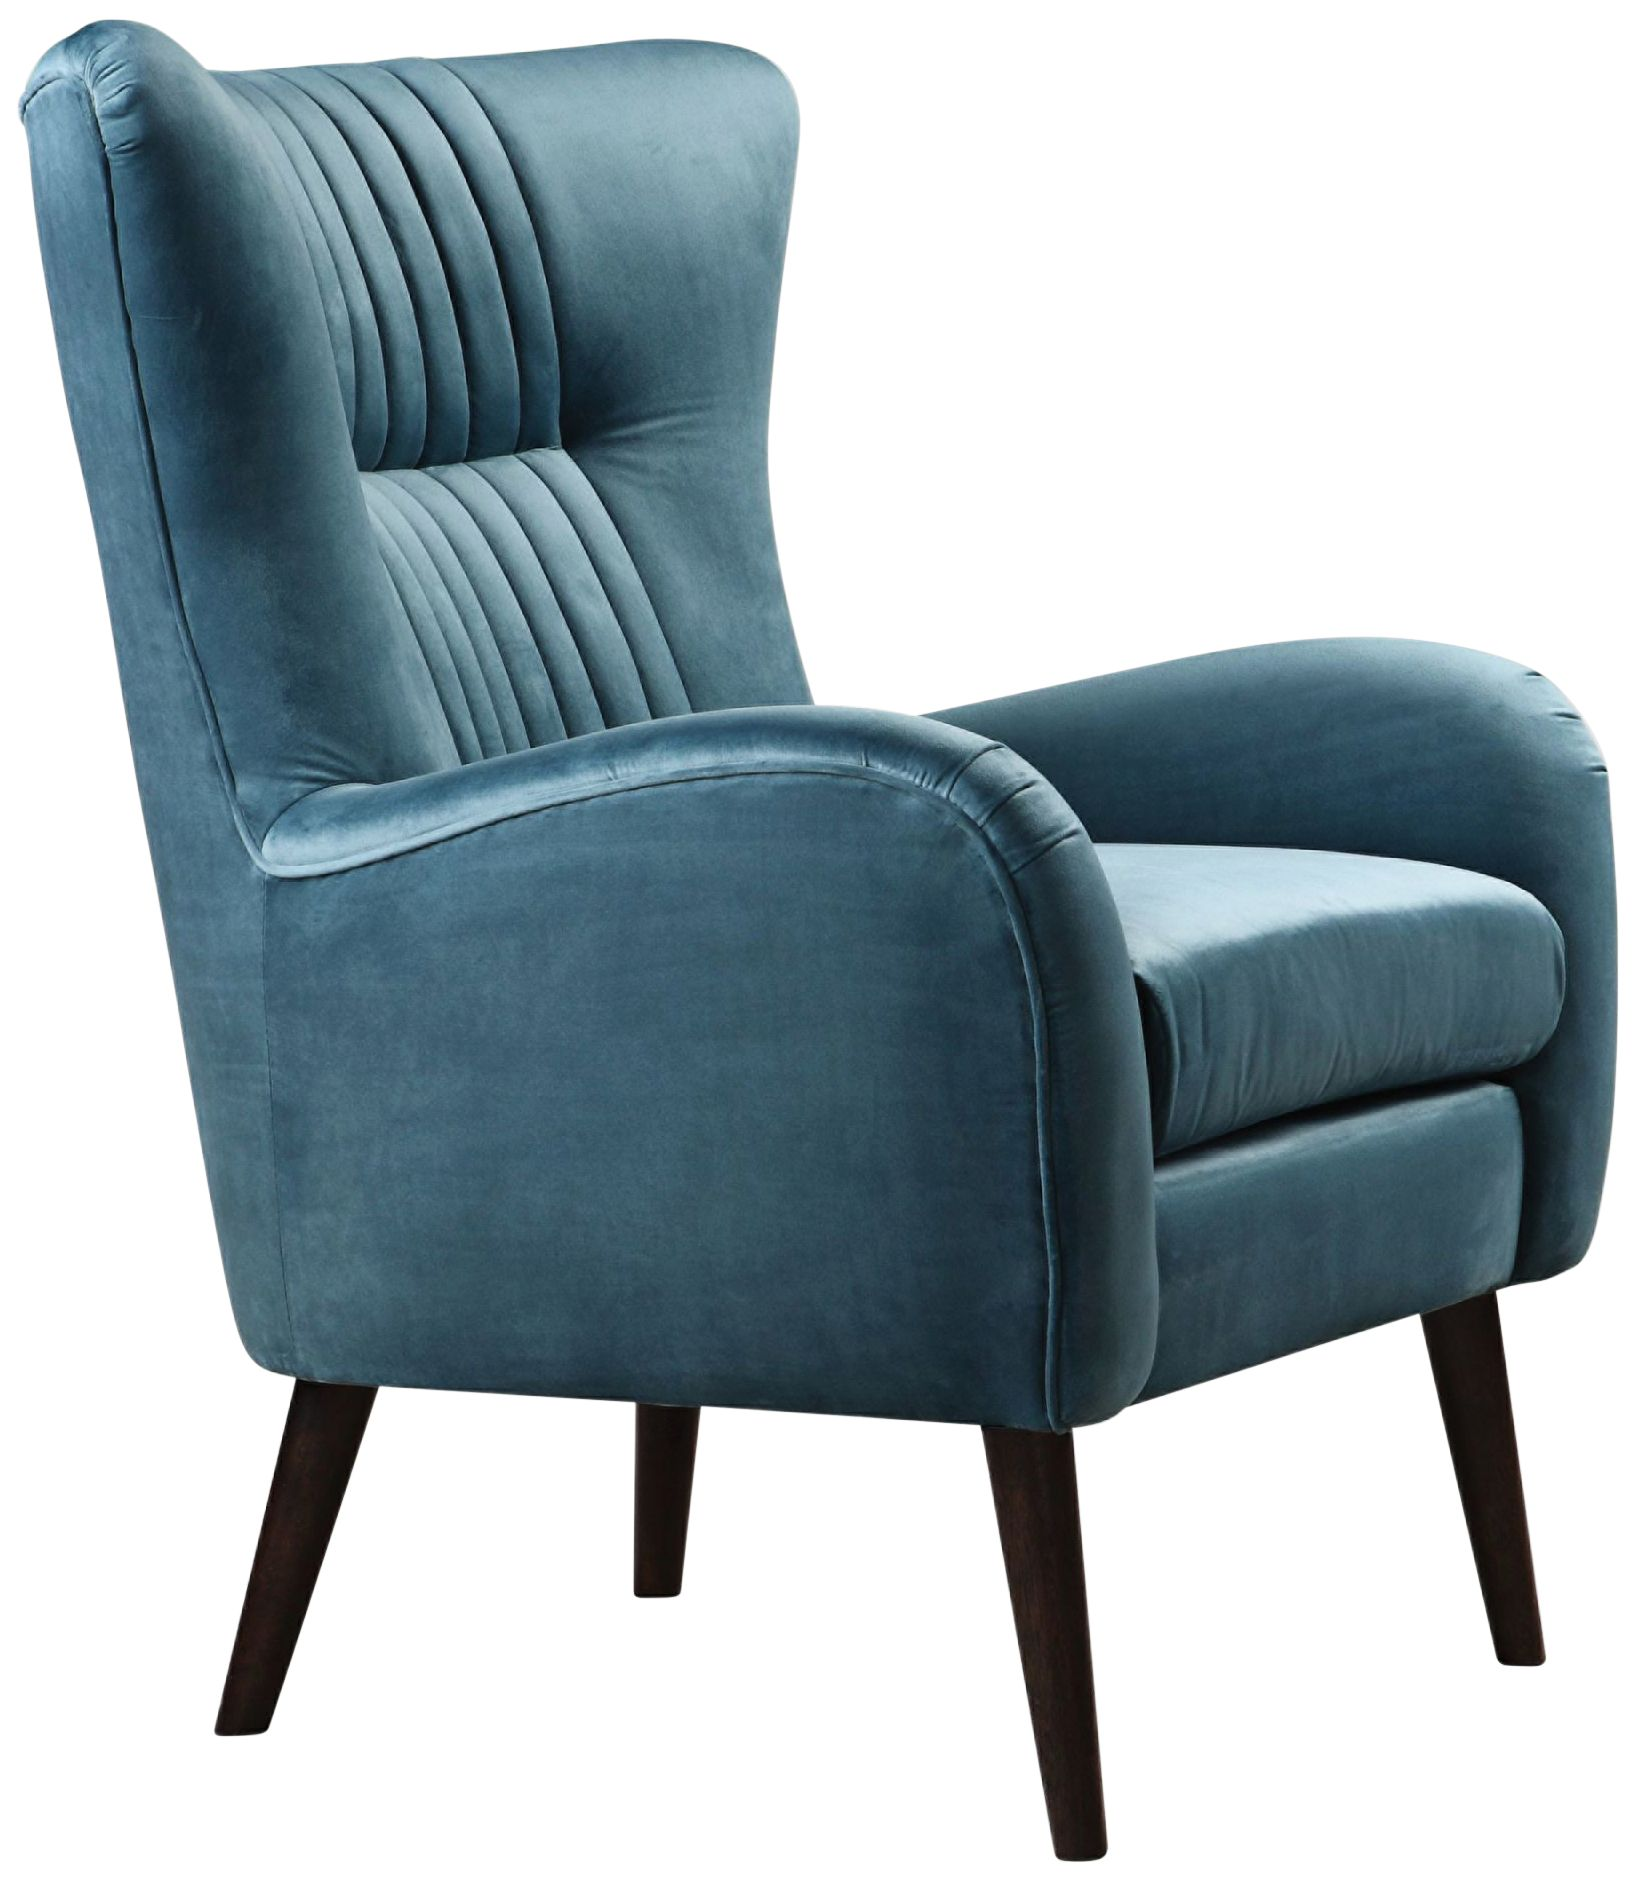 Uttermost Dax Teal Blue Velvet Tufted Accent Chair